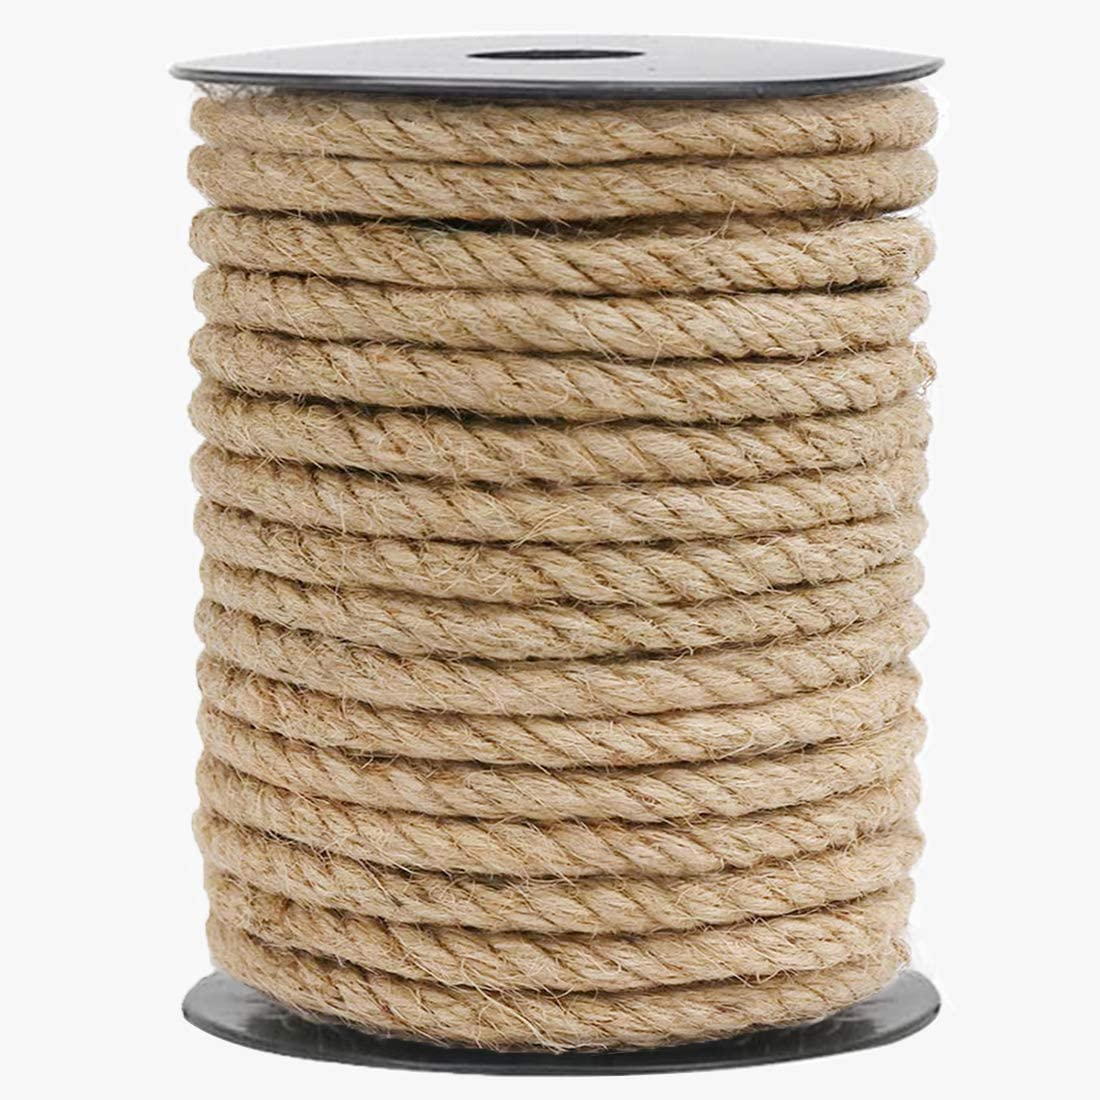 HOMYHOME Jute Rope Natural Jute Twine 10 mm Rope Cord Craft for Packaging Arts,Crafts Decoration Bundling Gardening Home 32 Feet